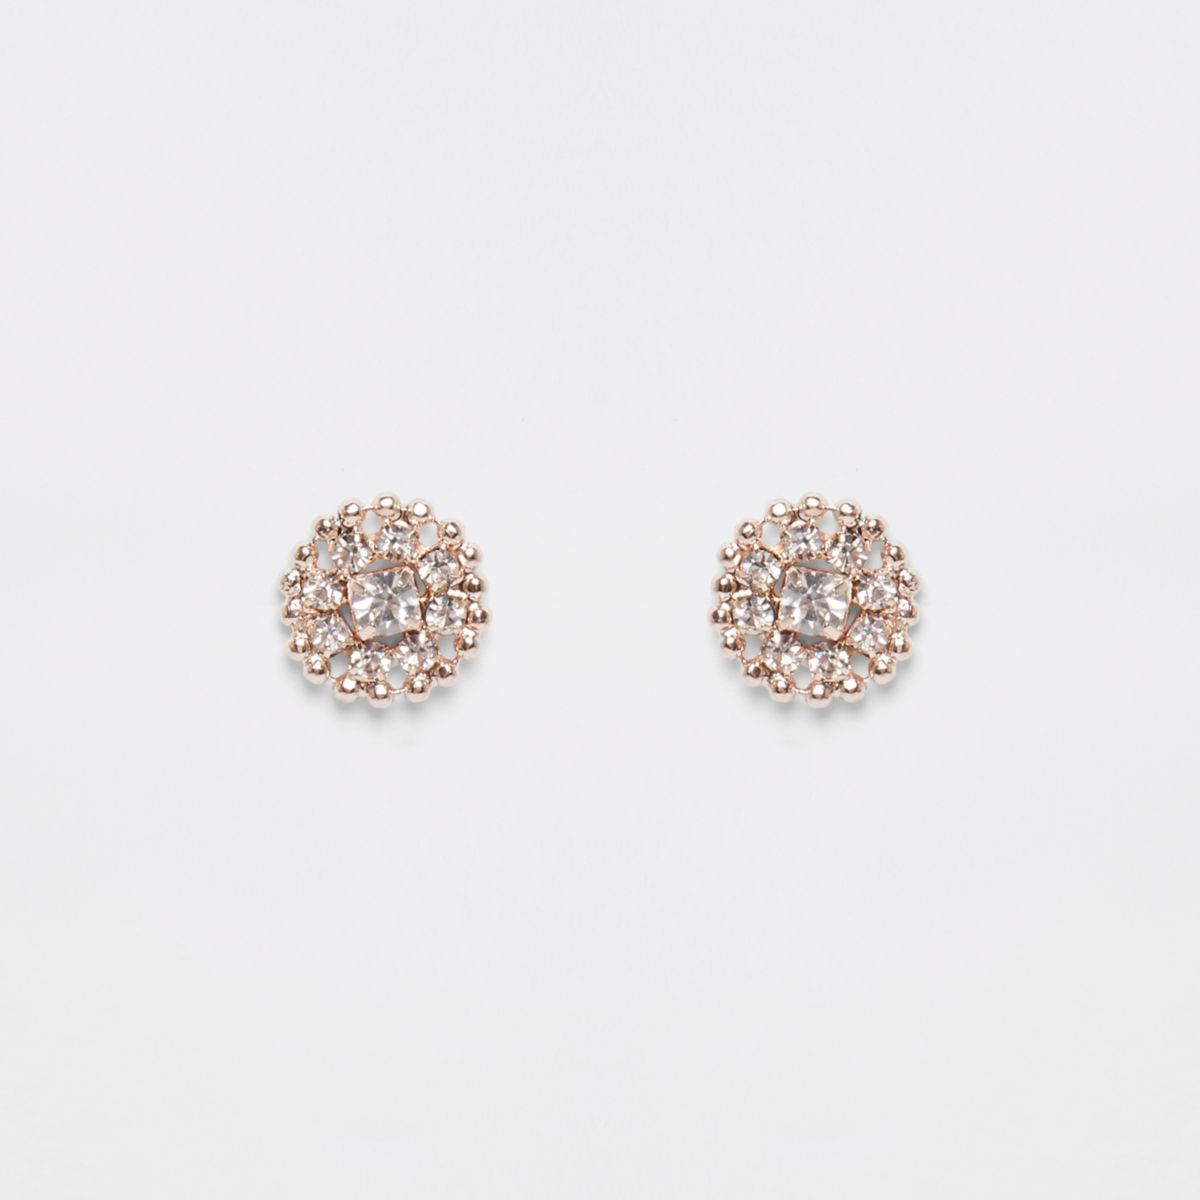 Rose gold tone diamante stud earrings